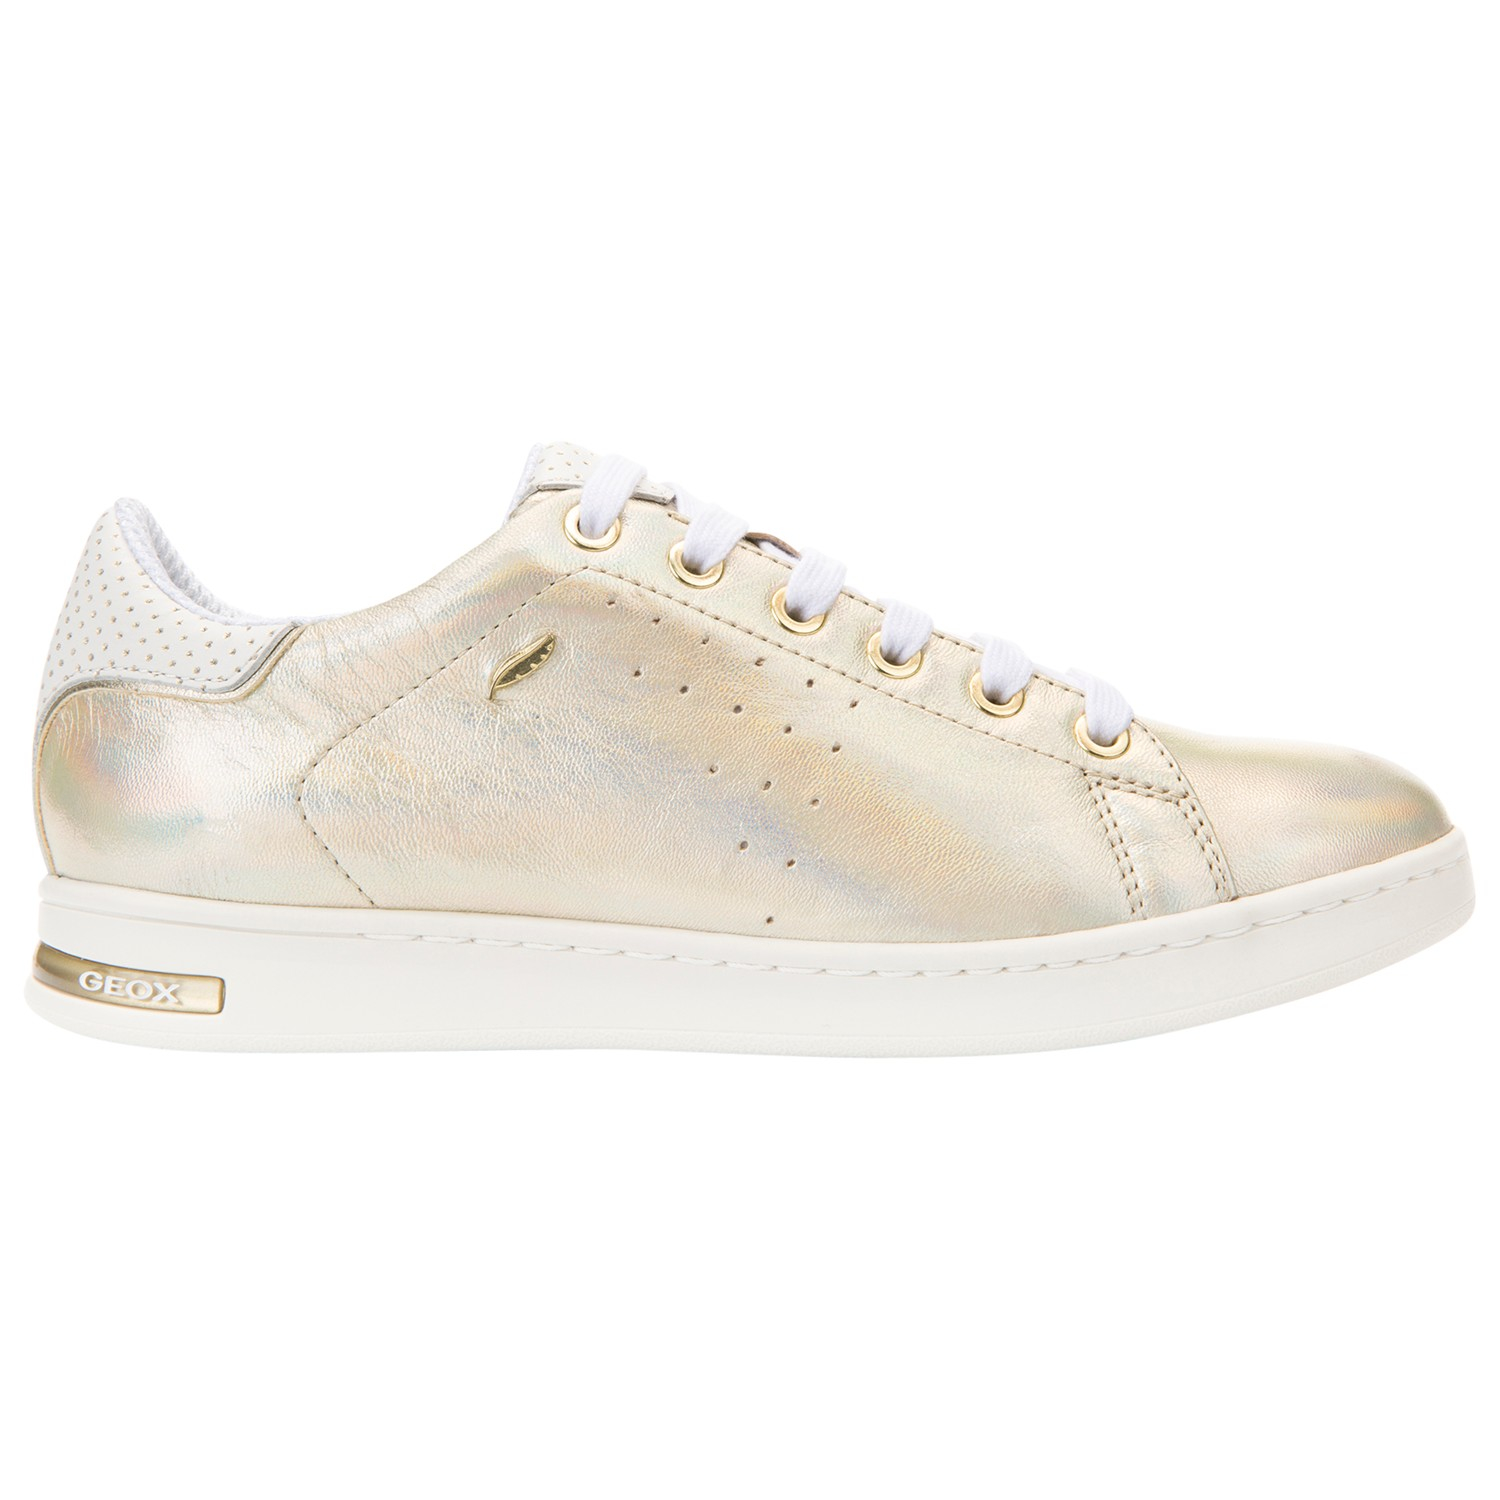 57fb7a6d78 Geox Jaysen Flat Lace Up Trainers in Metallic - Lyst